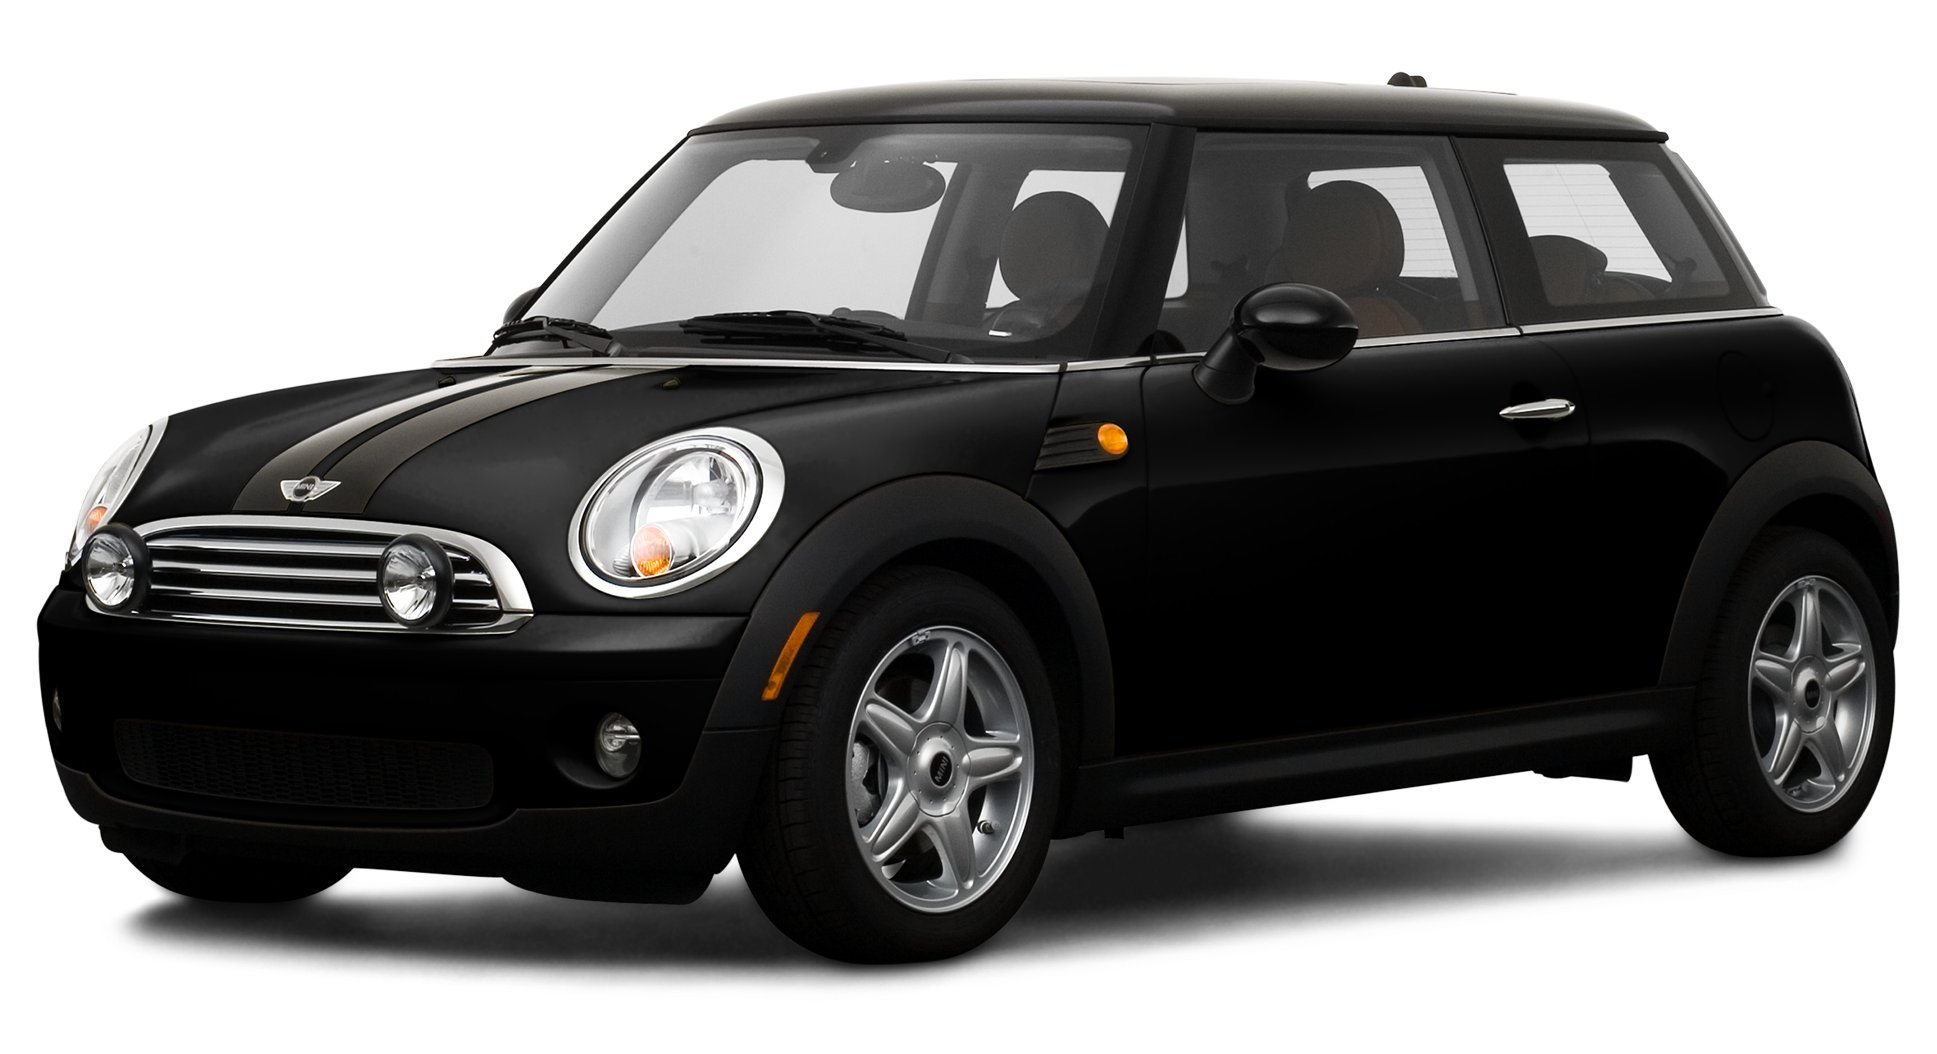 2009 mini cooper reviews images and specs vehicles. Black Bedroom Furniture Sets. Home Design Ideas